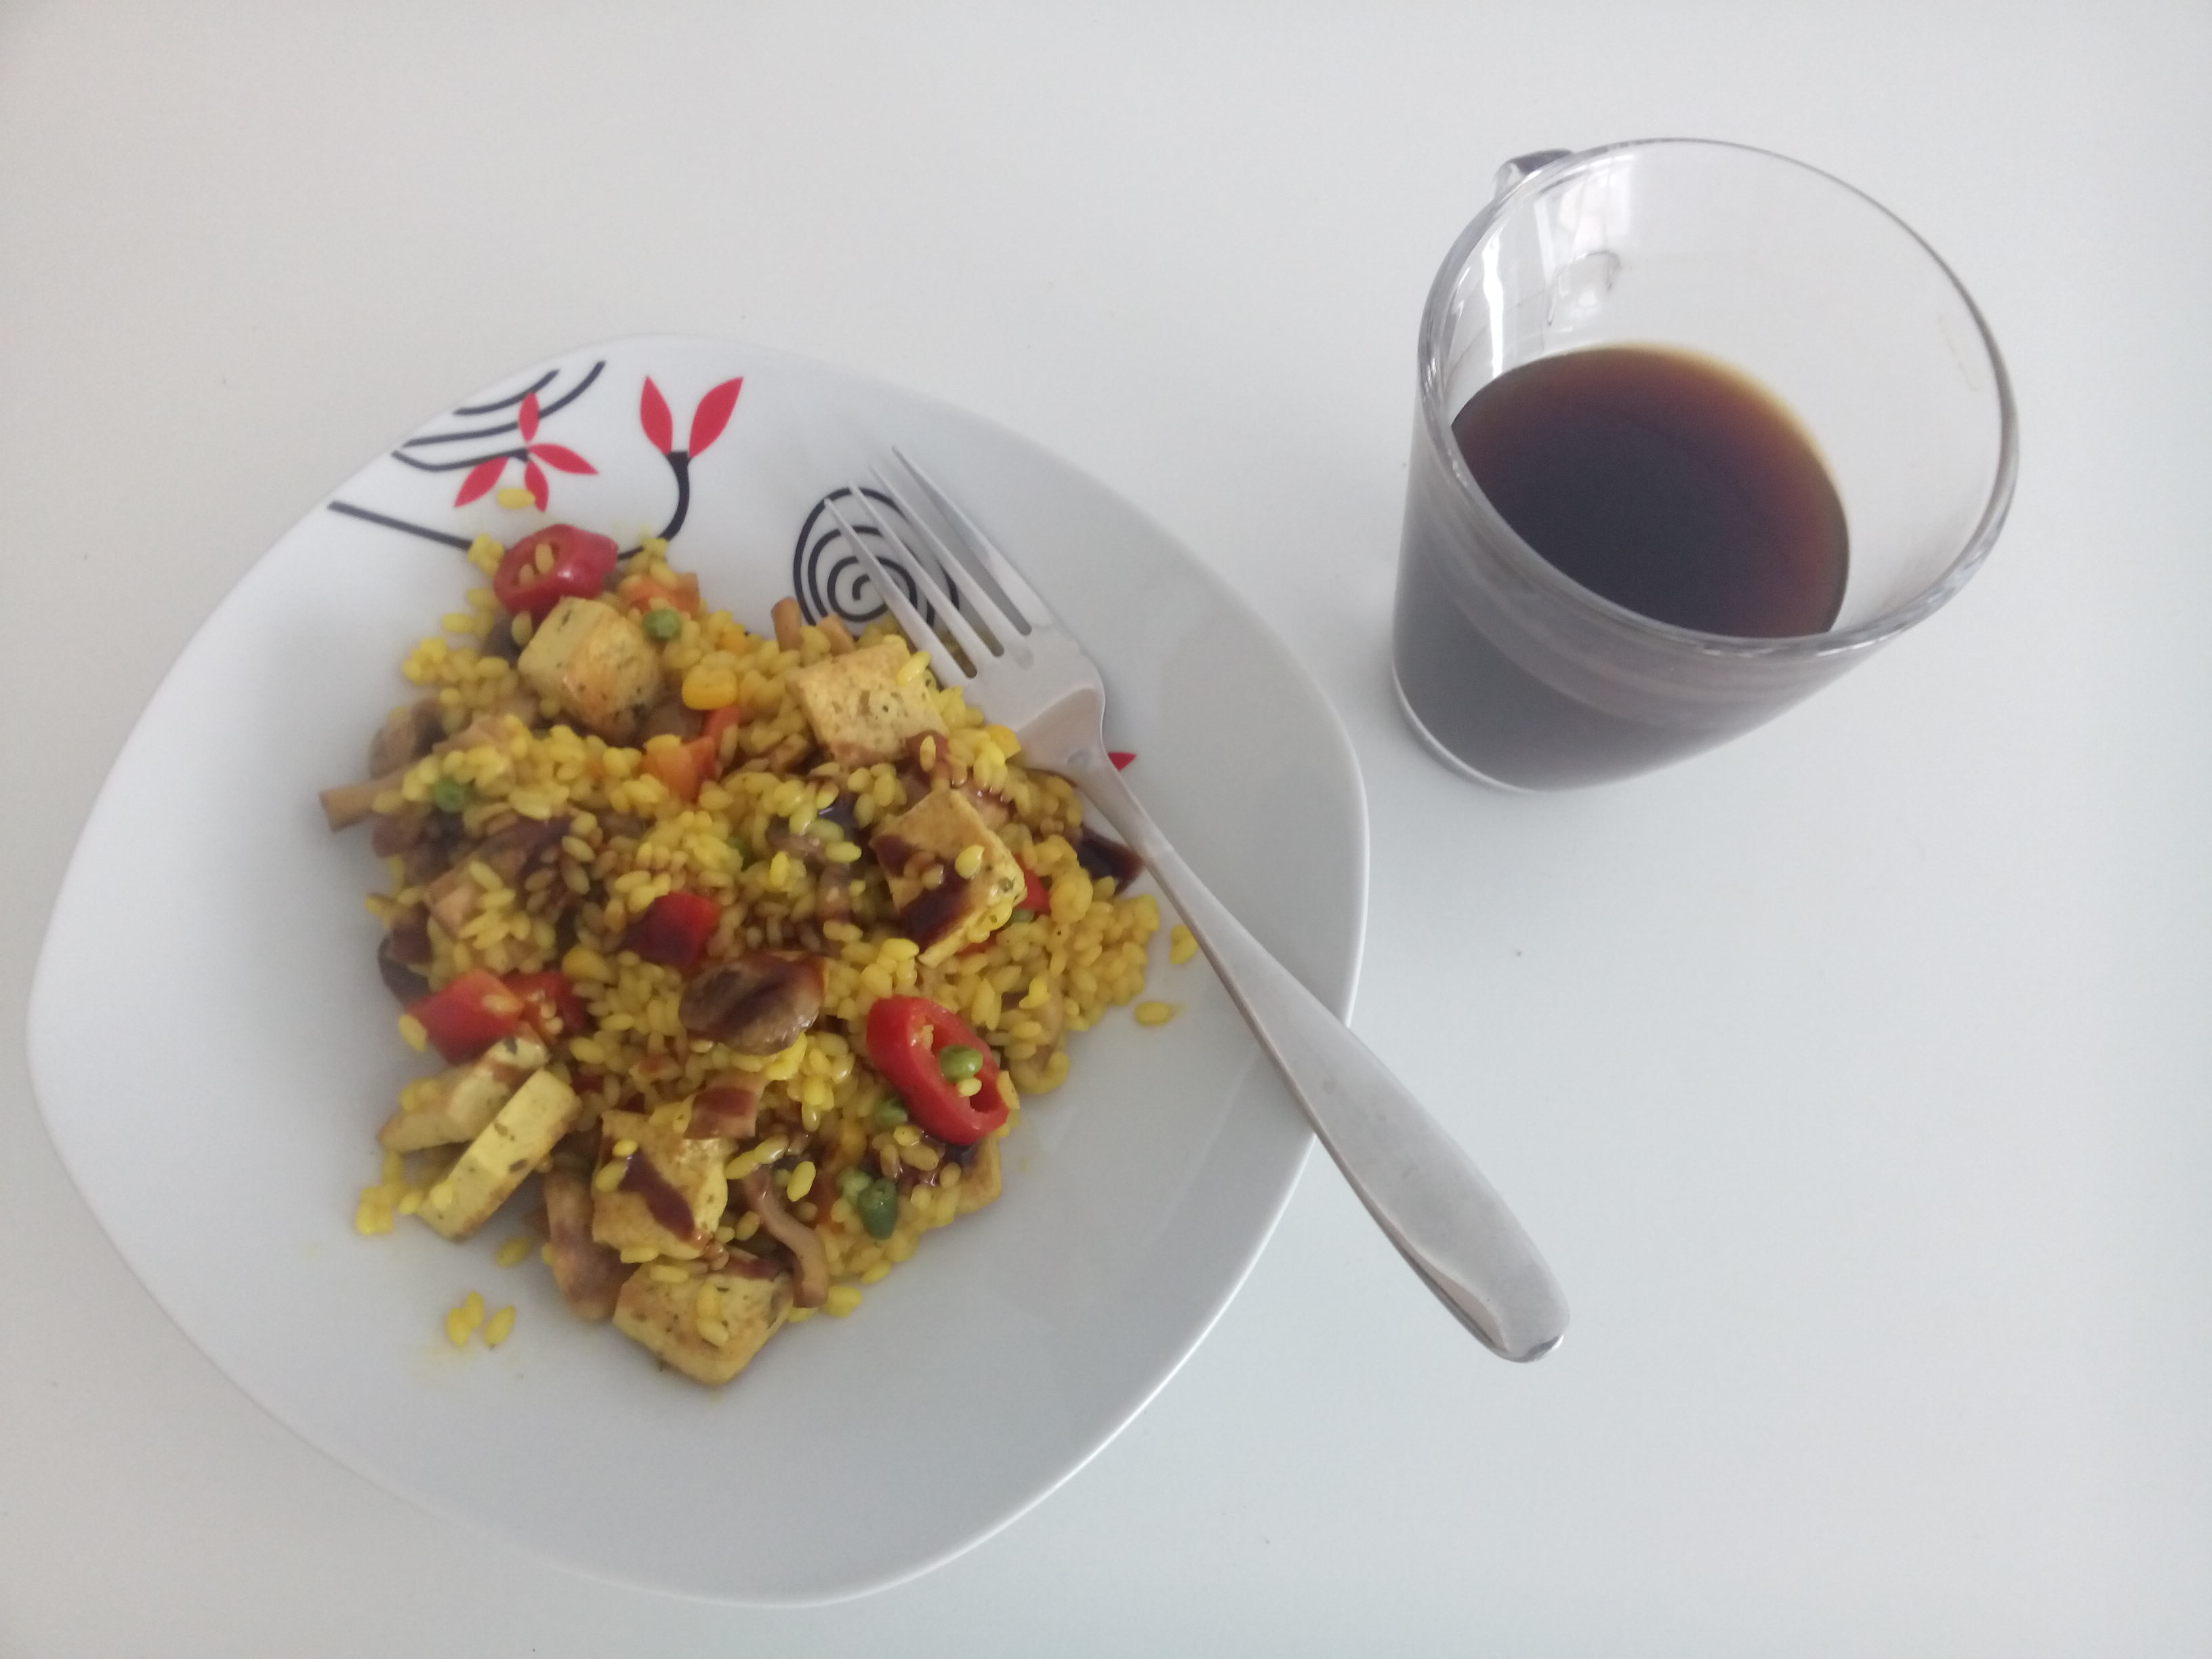 a bowl of yellow rice with colourful veggies on a white table beside a fork and glass mug of black coffee